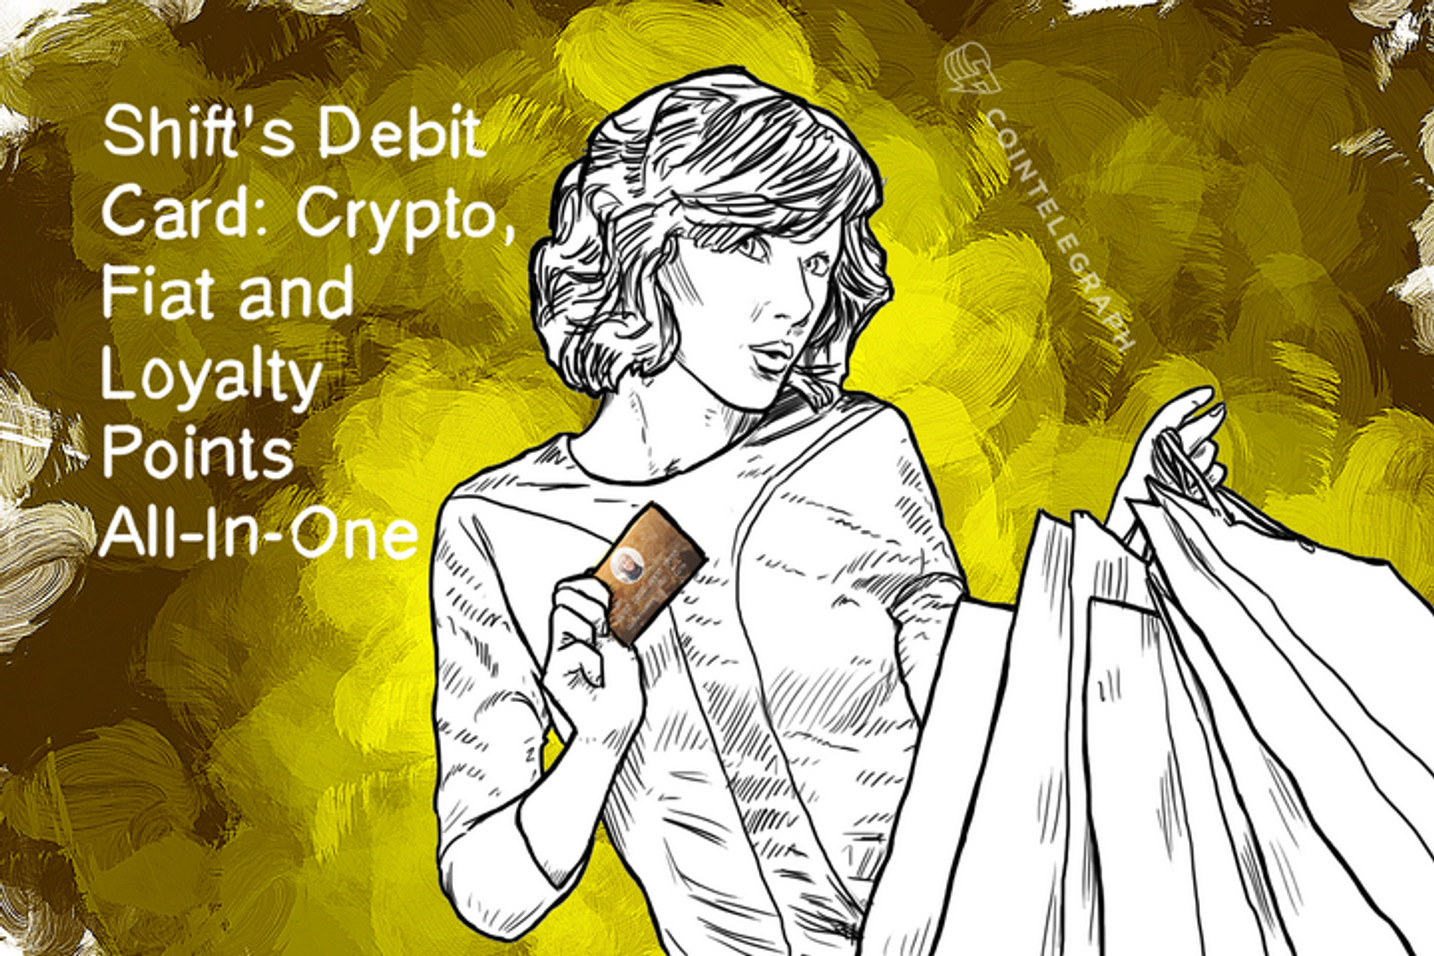 Shift's Debit Card: Crypto, Fiat and Loyalty Points All-In-One